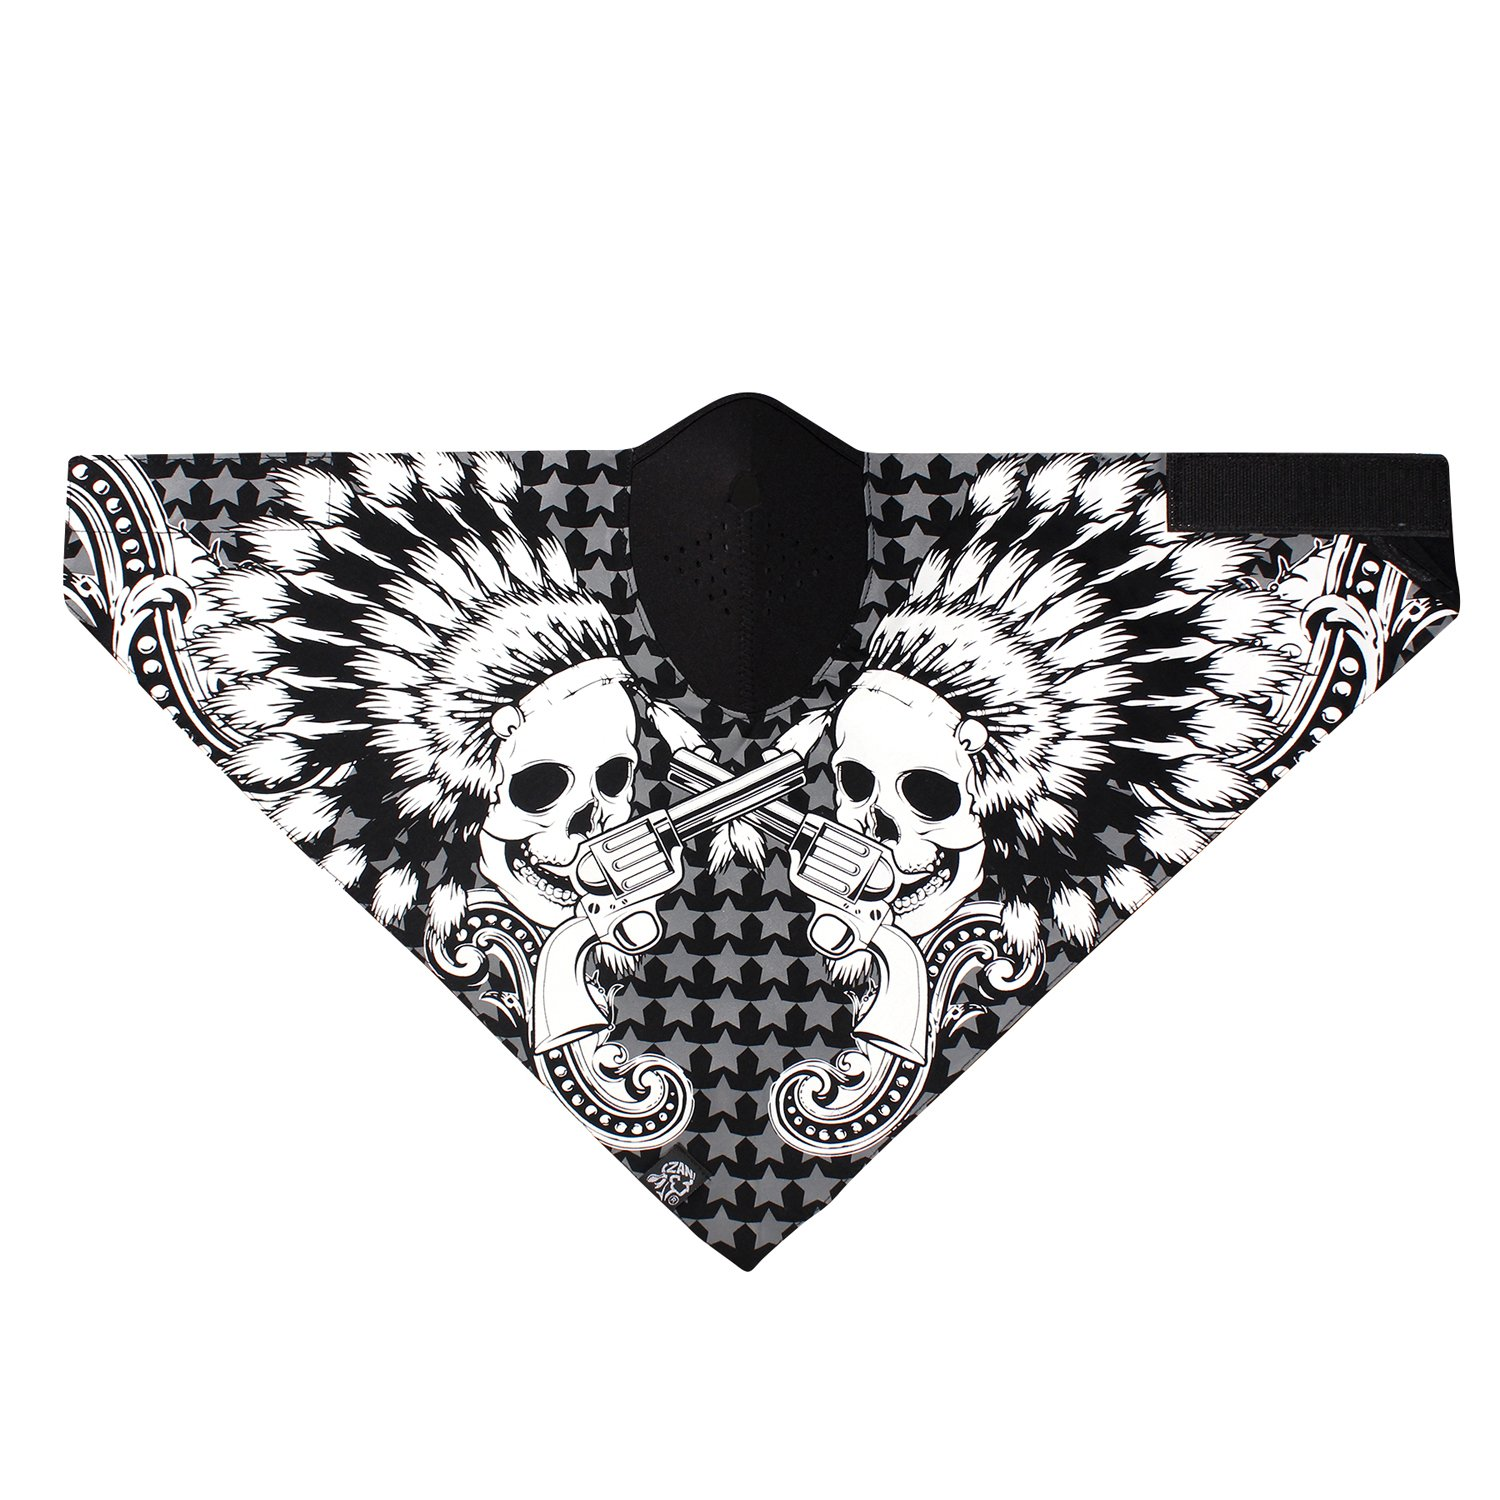 Zanheadgear Neodanna Chief 100 Percentage Cotton Bandanna with Neoprene Face Mask